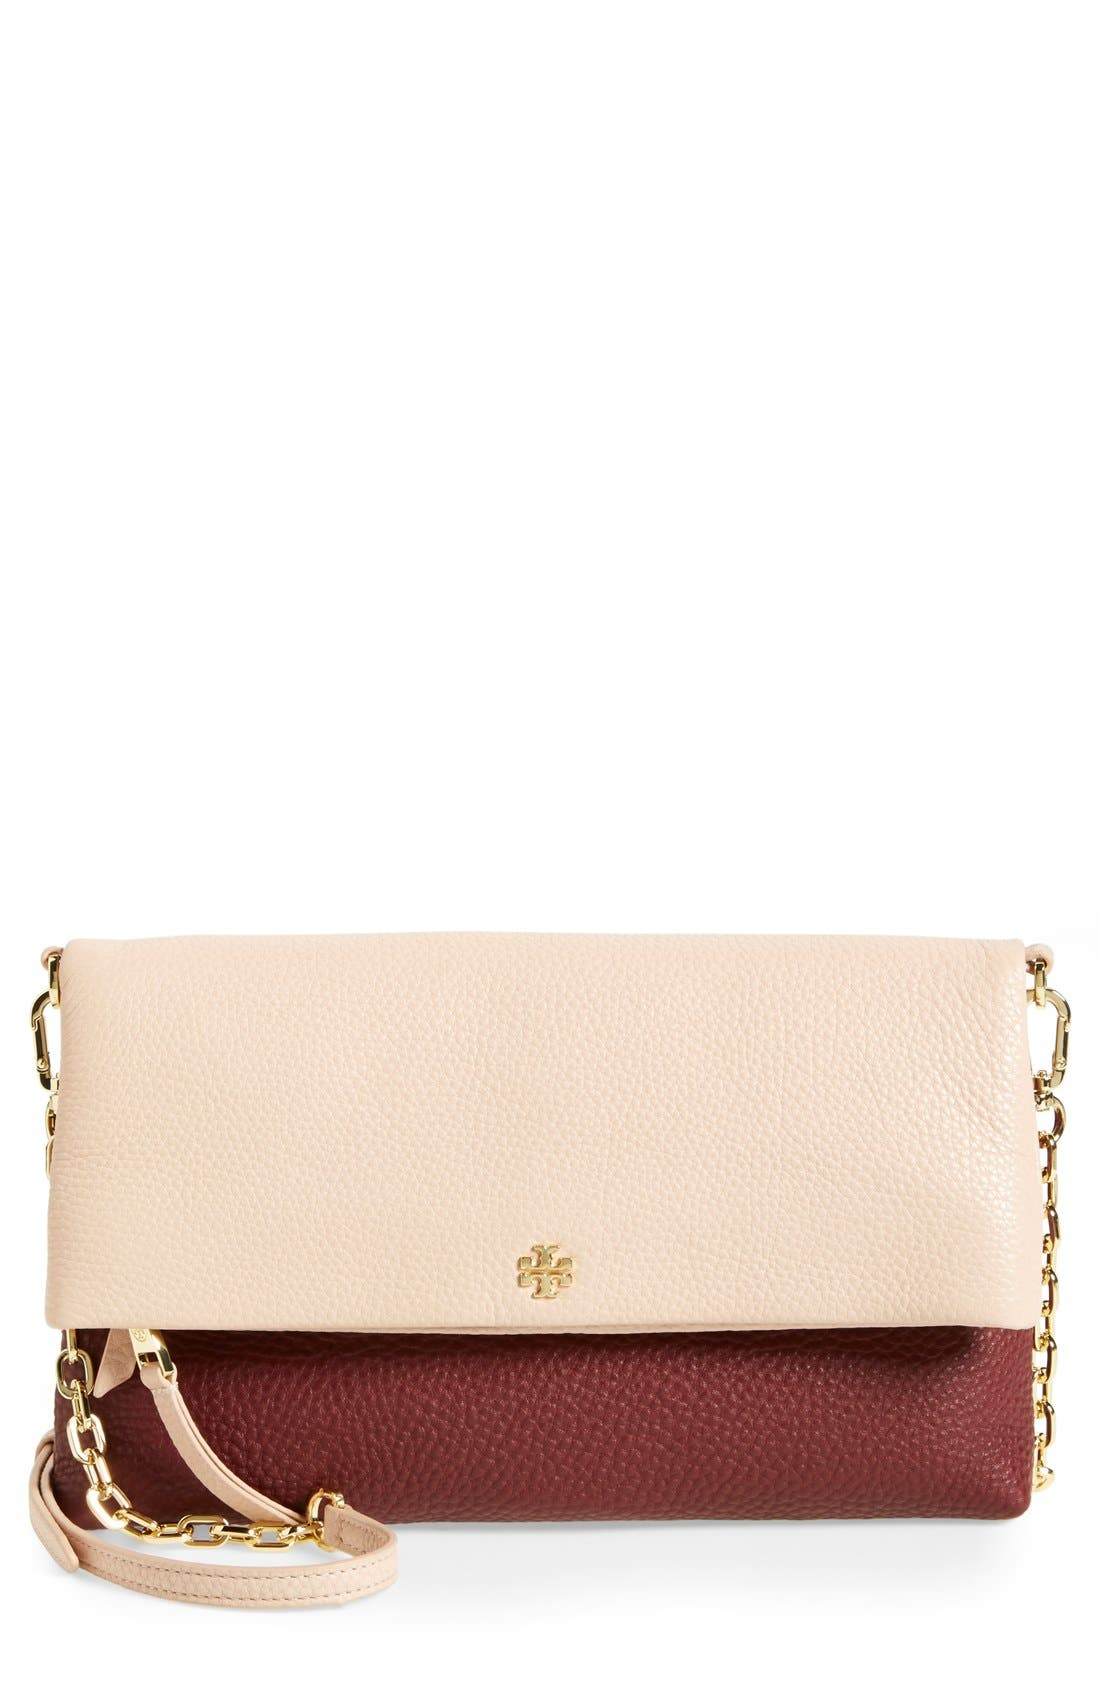 Main Image - Tory Burch Foldover Crossbody Bag